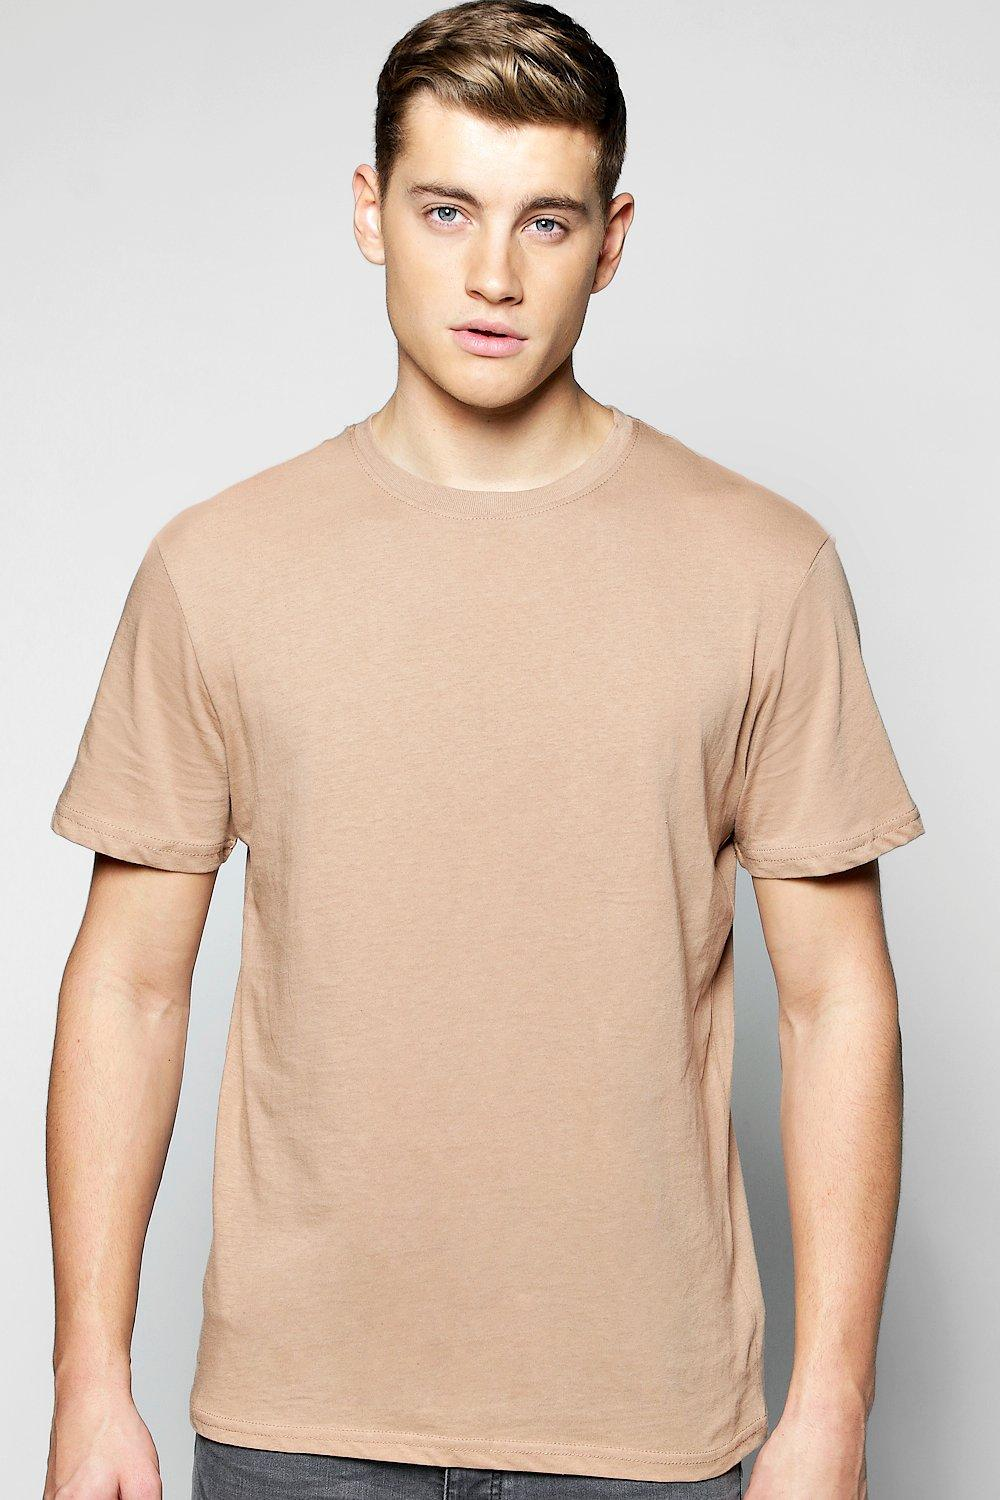 Oversized Boxy T Shirt